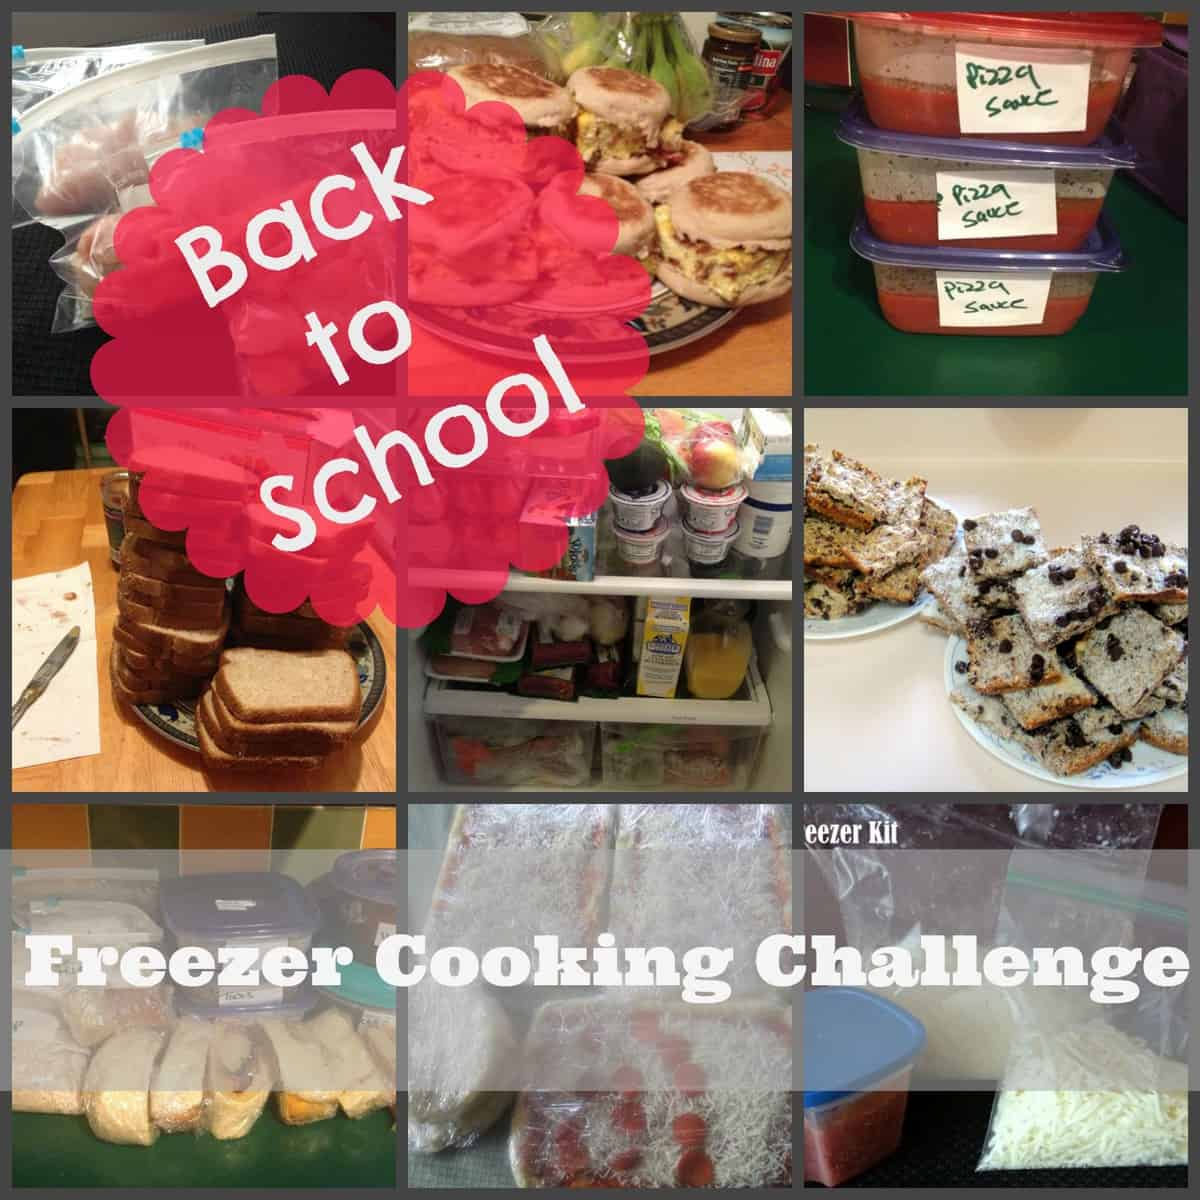 Back to School Freezer Cooking Challenge